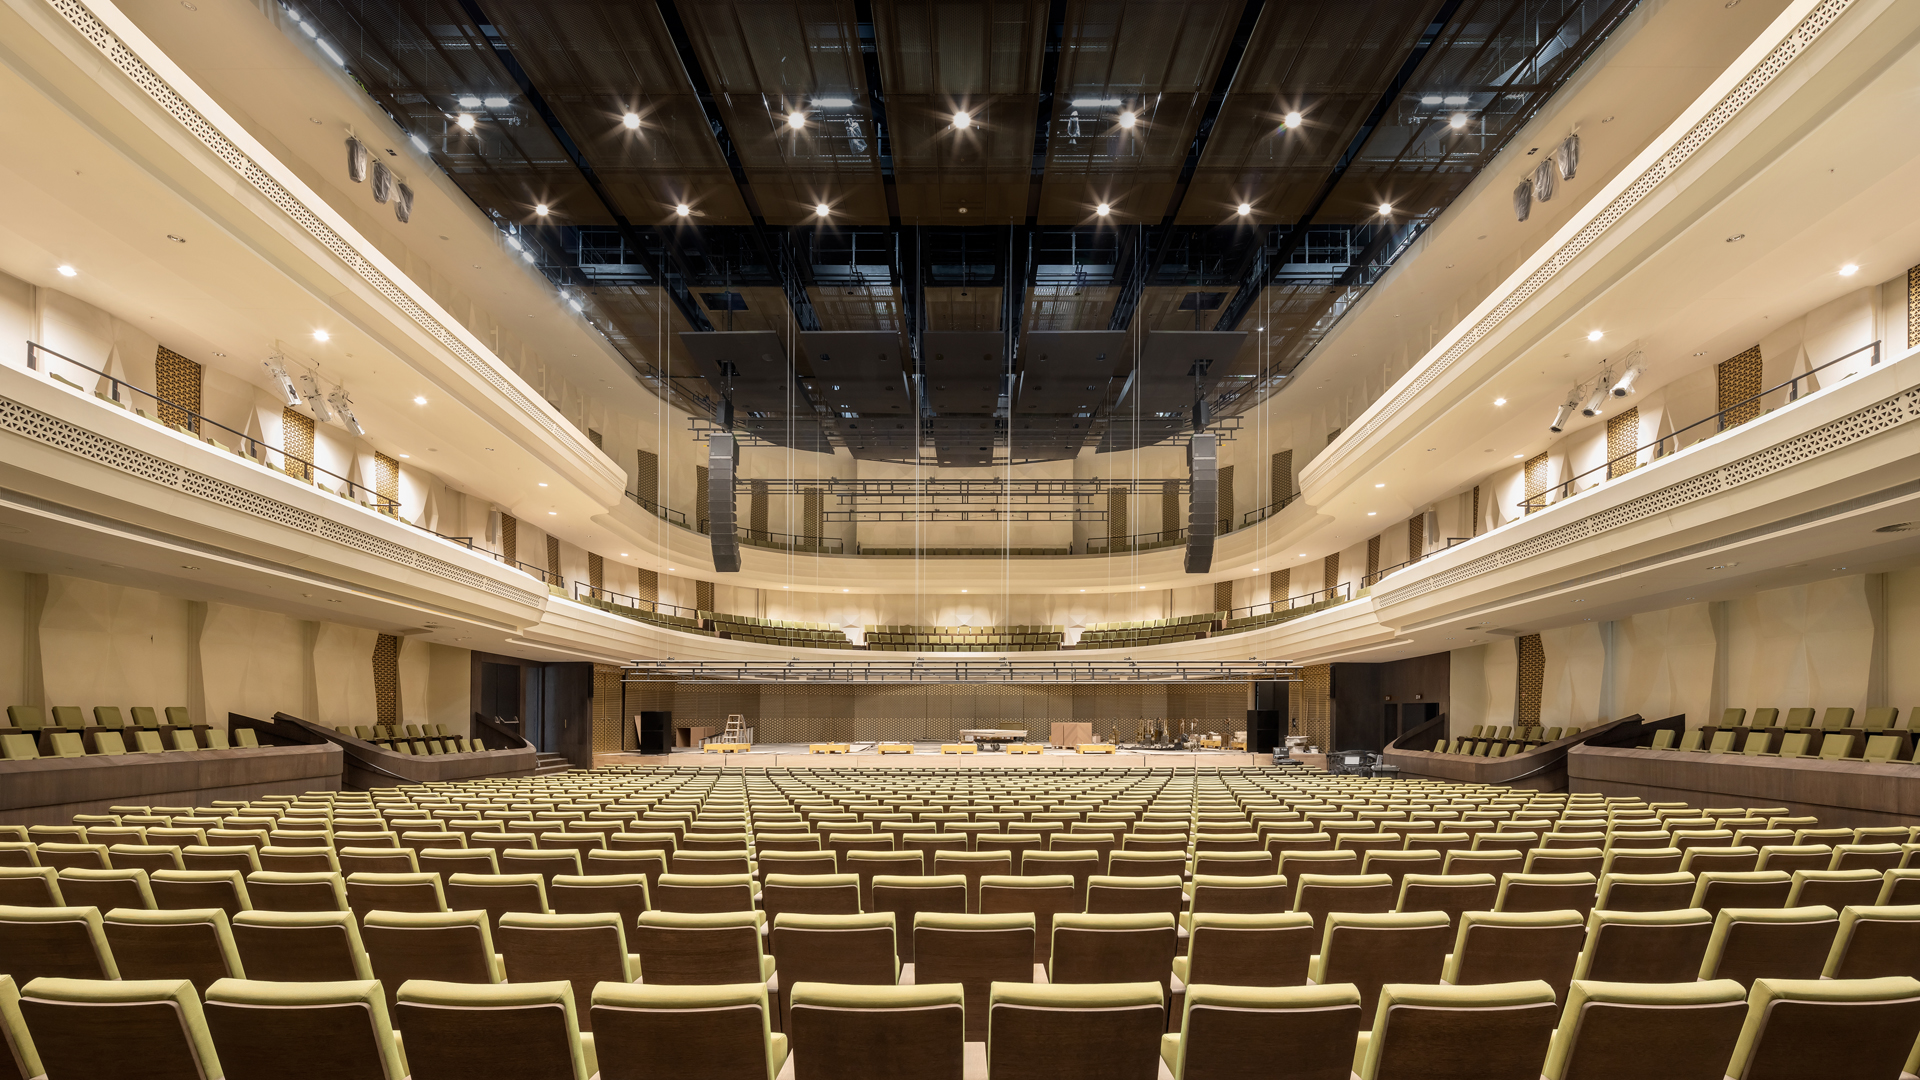 The new performing arts centre Amare, designed by NOAHH and JCAU